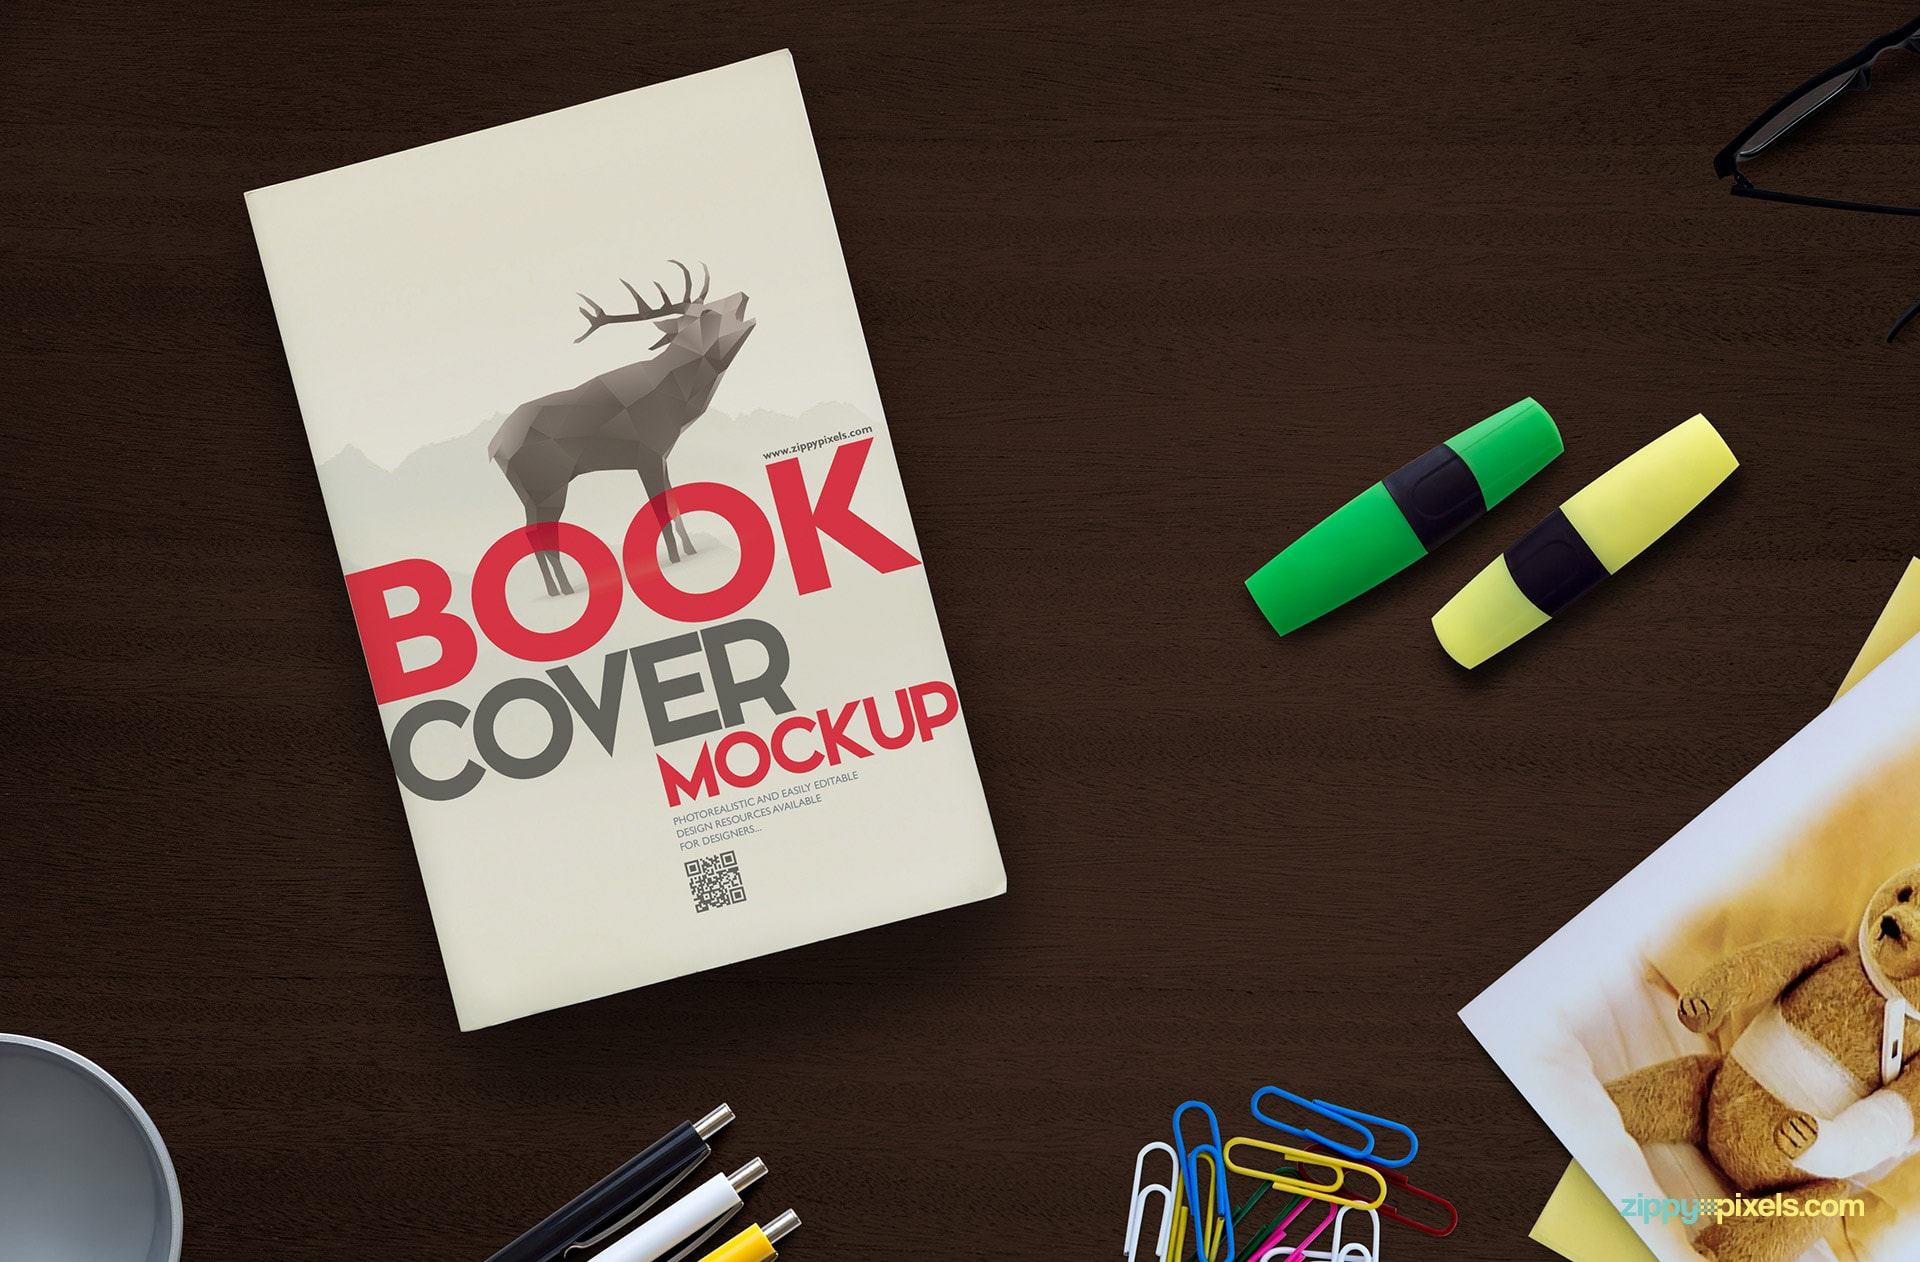 Book cover mockup psd with a pair of highlighters, bunch of paperclips, three pens, pen holder & greeting card